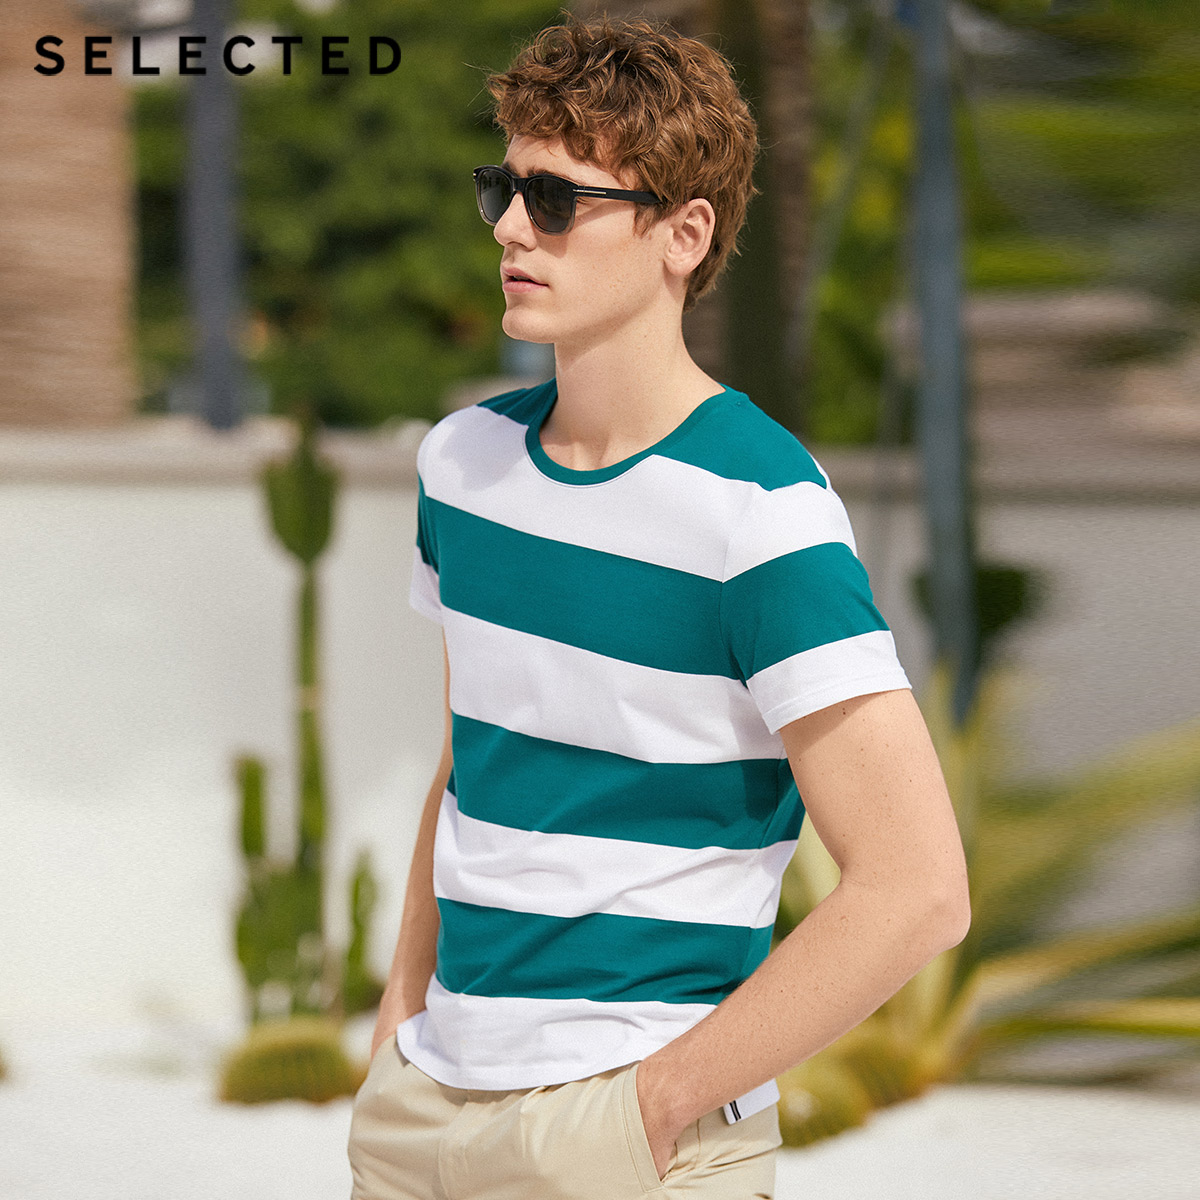 SELECTED Men's Summer 100% Cotton Round Neckline Striped Short-sleeved T-shirt S|419201597